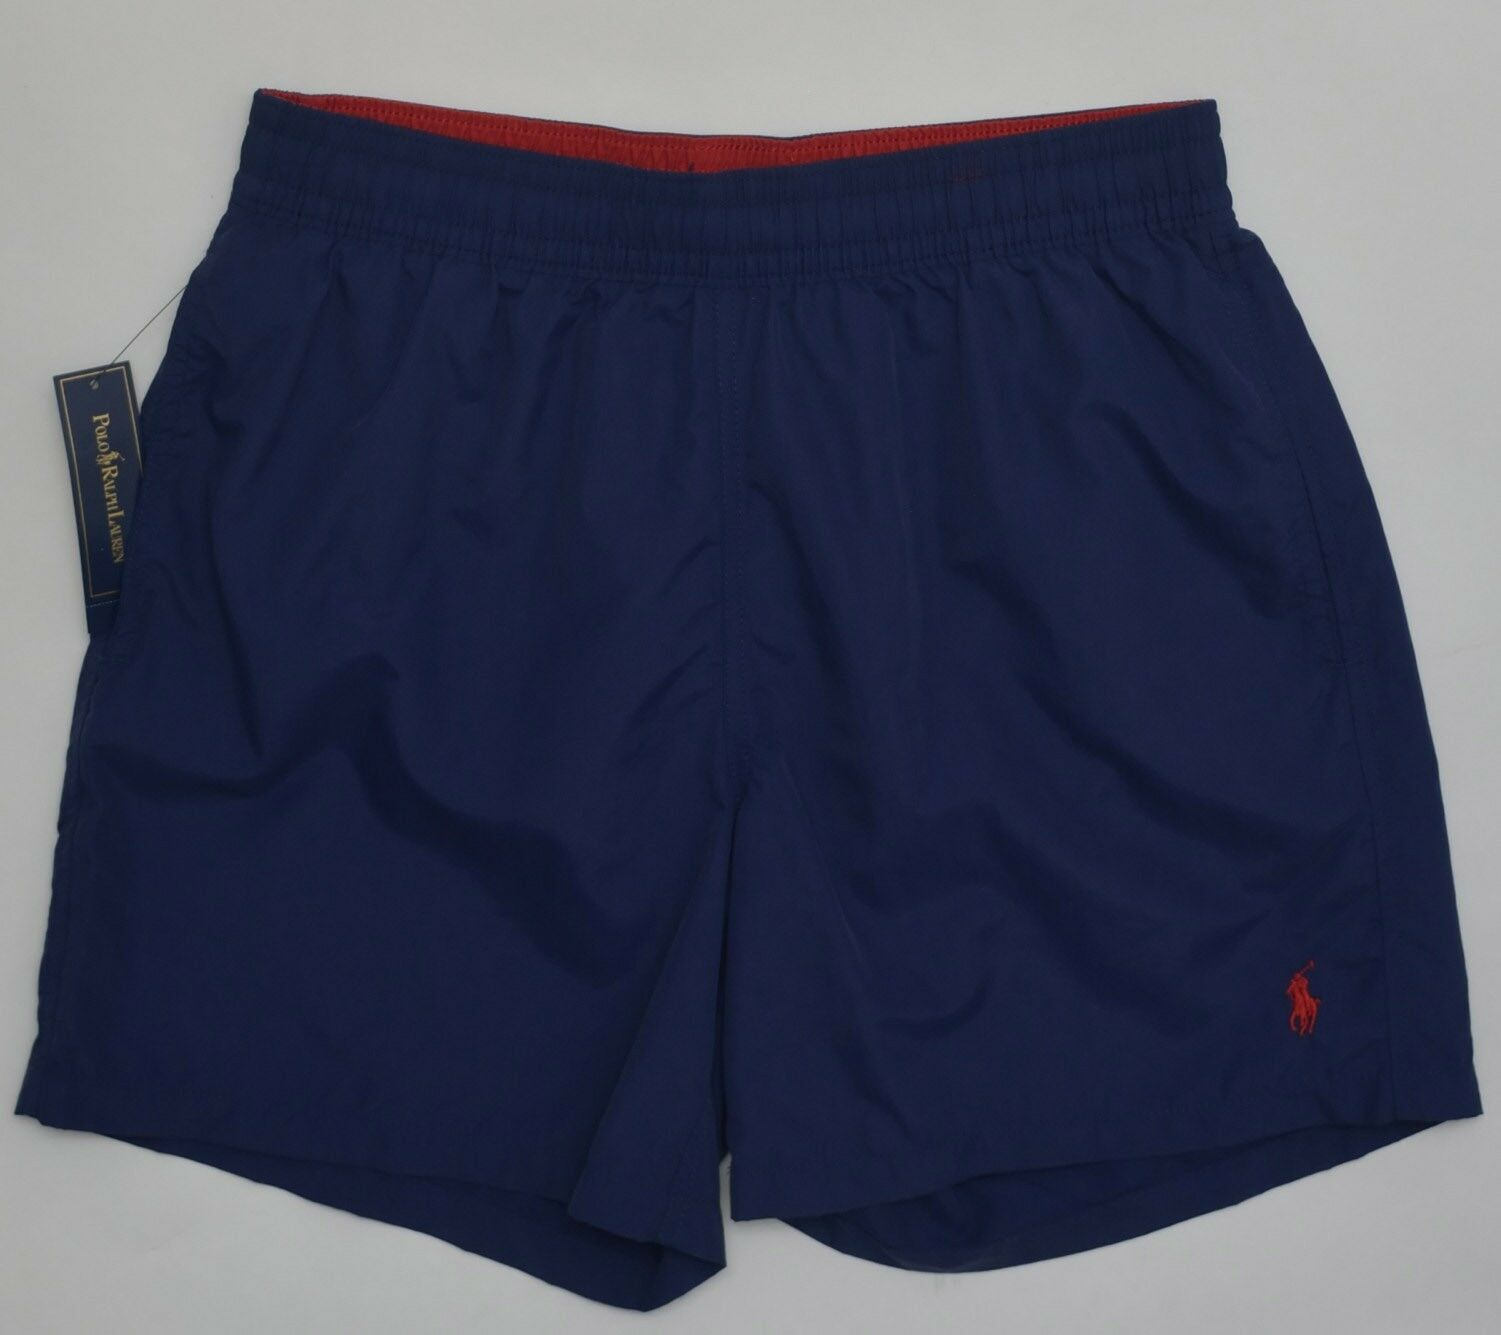 Men's POLO RALPH LAUREN Navy bluee Swimsuit Trunks XXL 2XL NWoT NEW 4187791 NICE